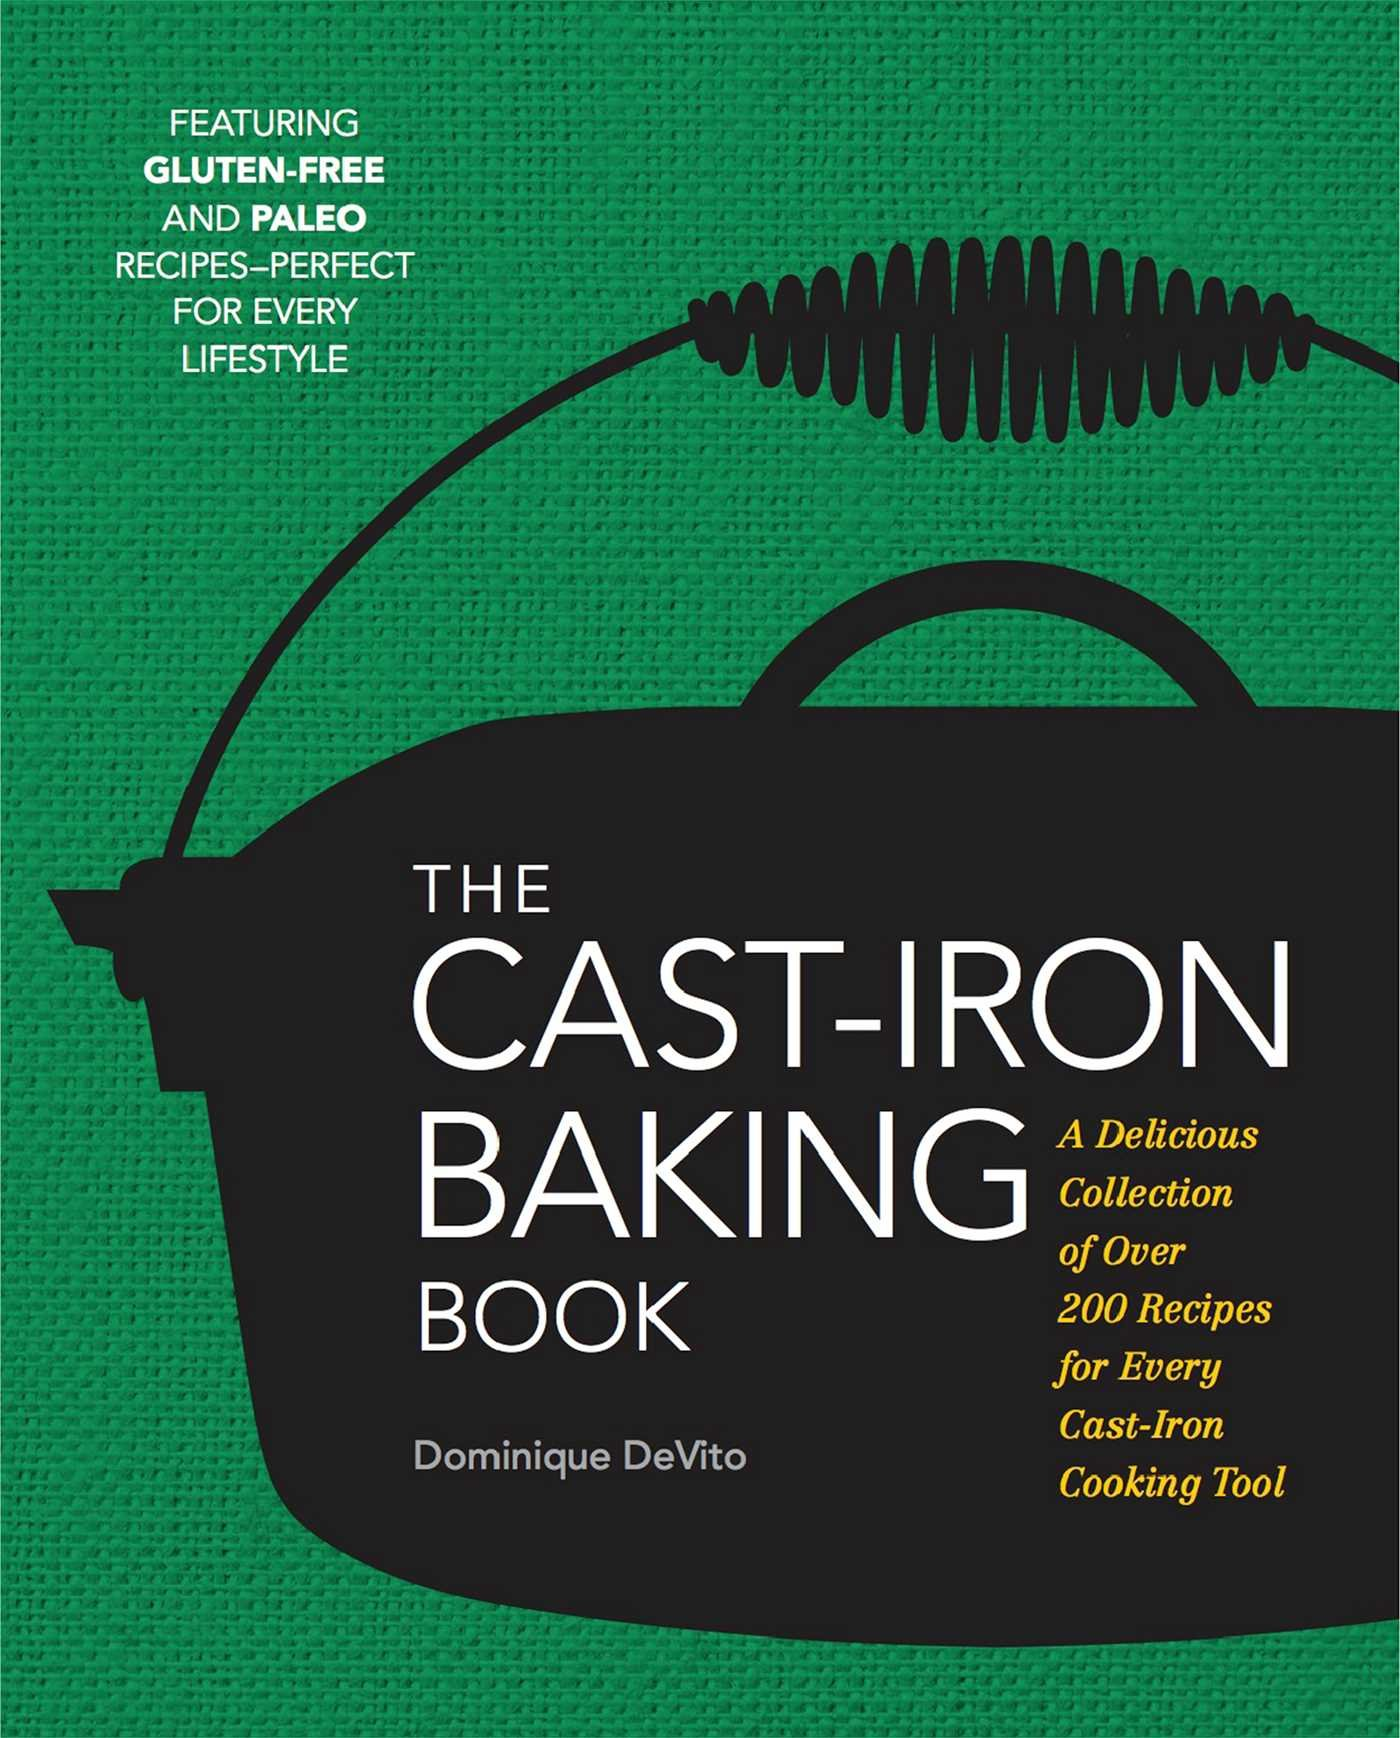 The Cast Iron Baking Book: More Than 175 Delicious Recipes for Your Cast-Iron Collection Hardcover – September 27, 2016 Dominique DeVito Cider Mill Press 1604336528 Courses & Dishes - Bread